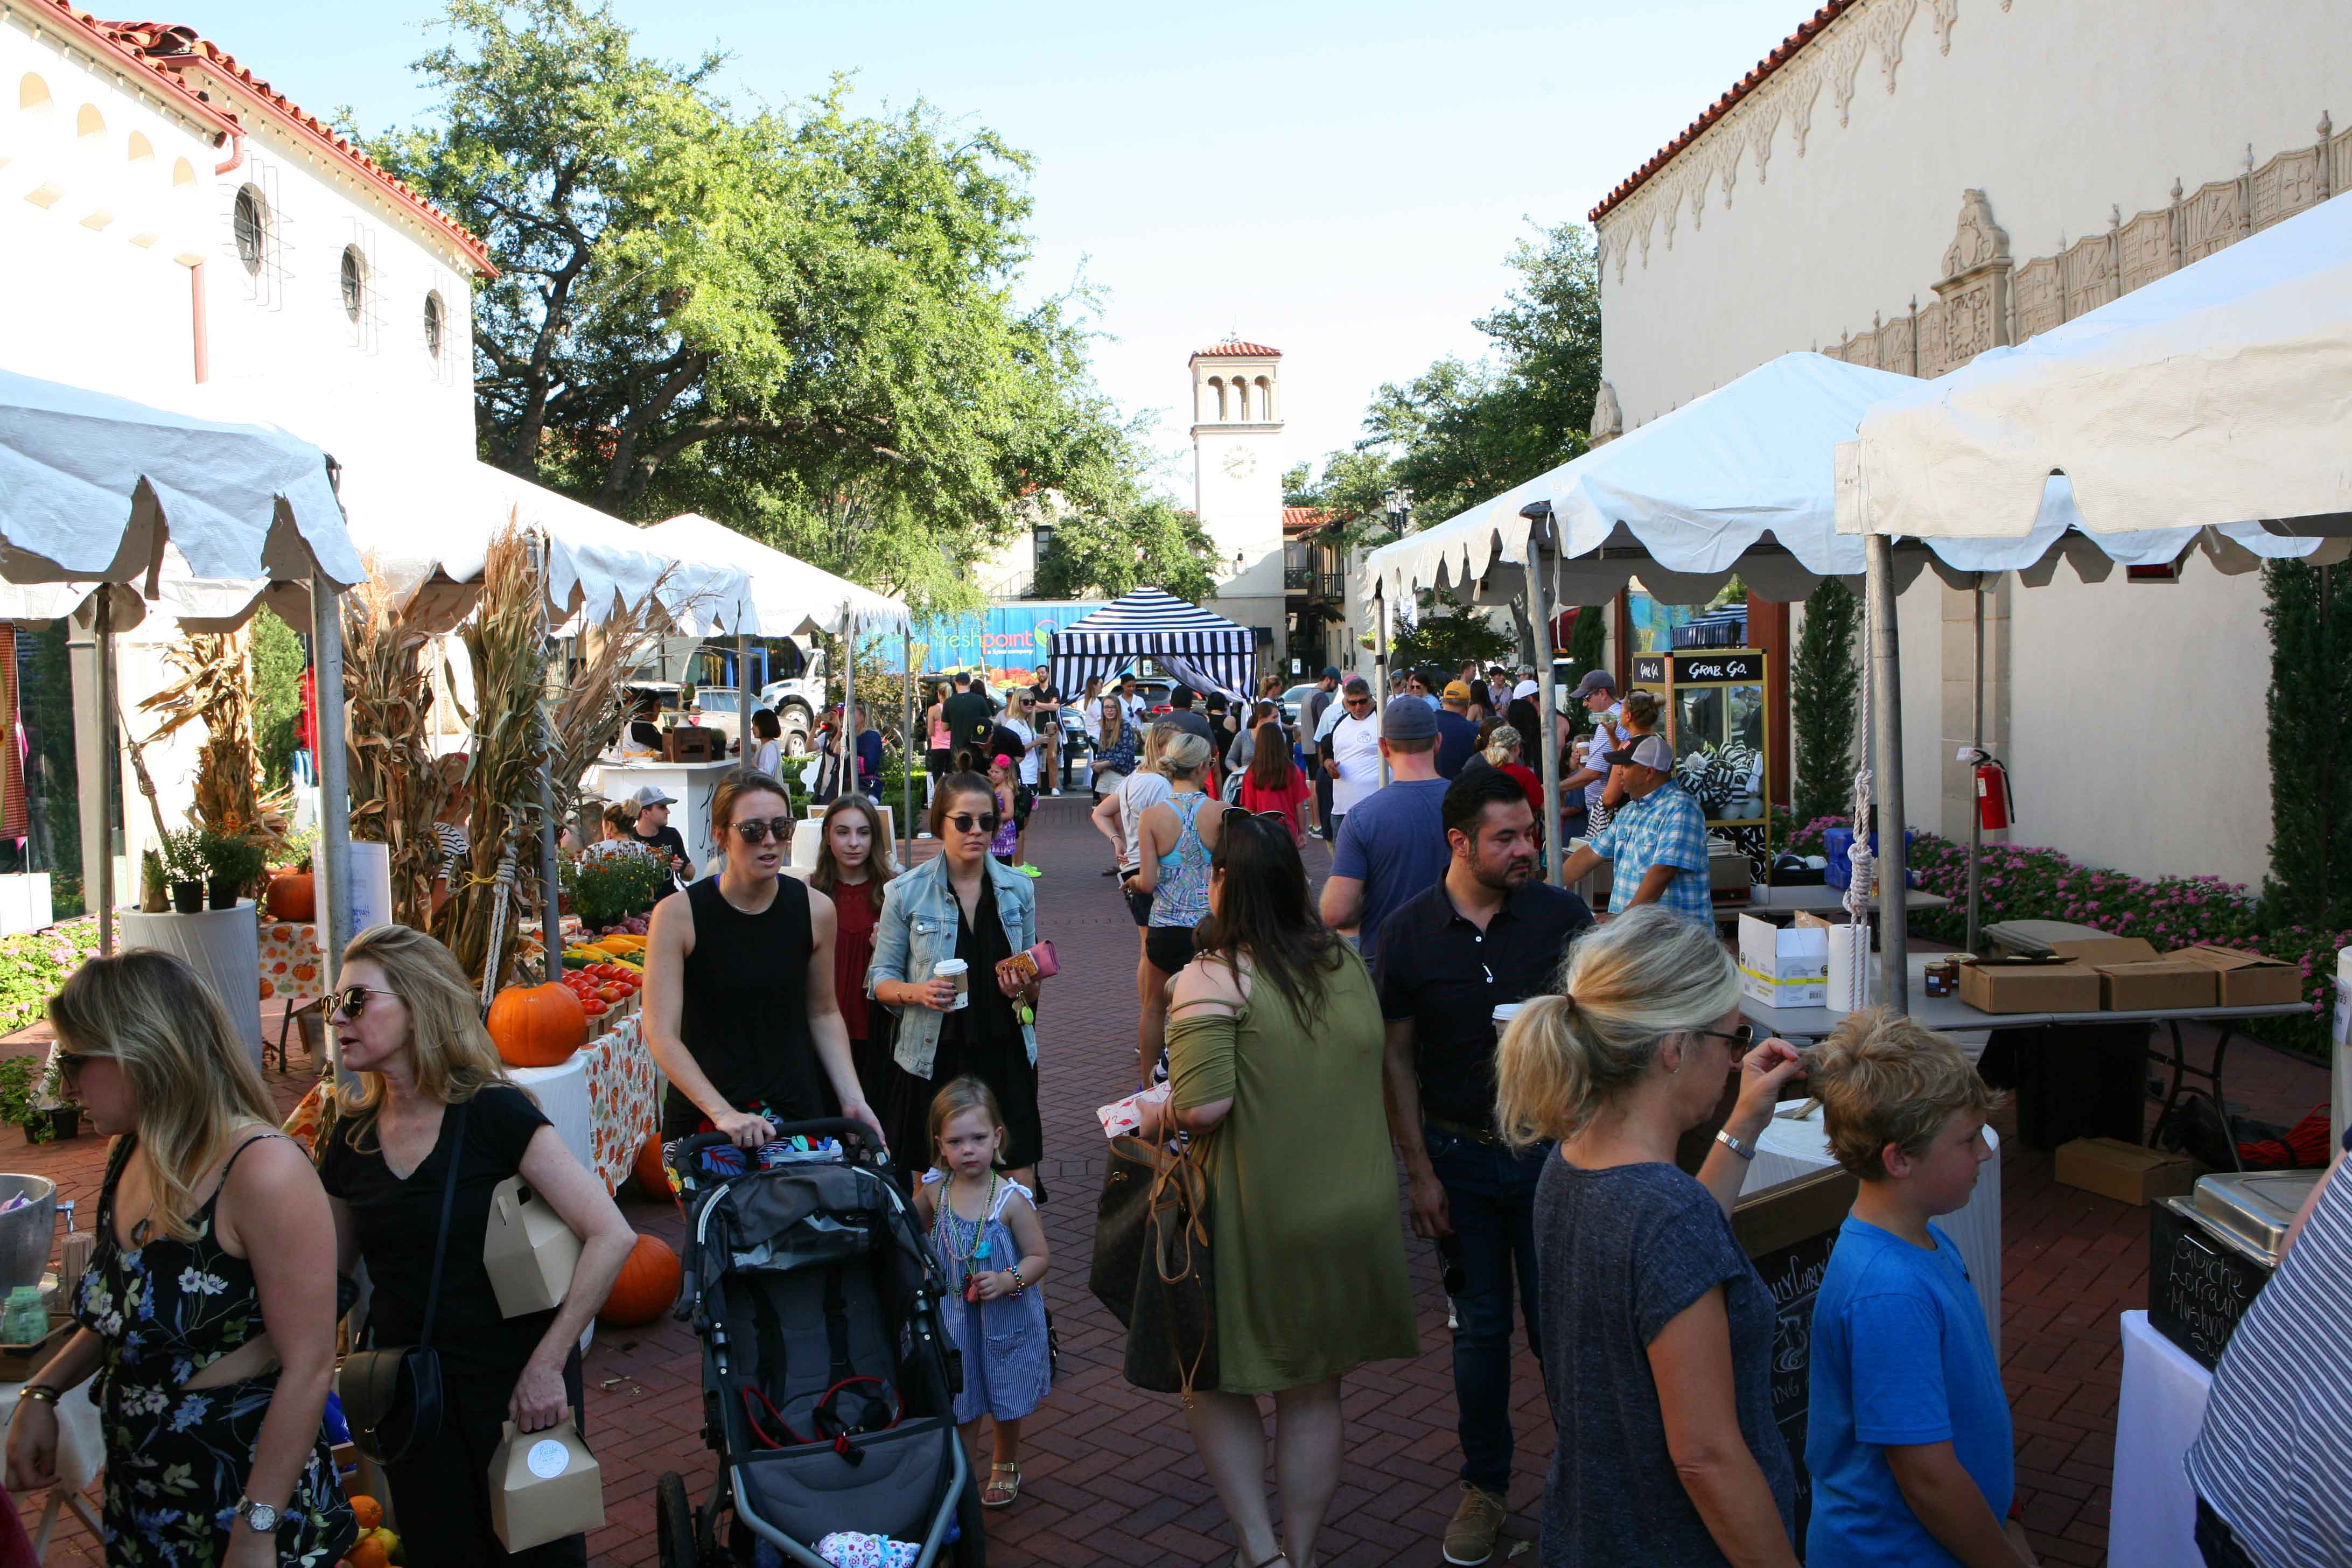 Guests explore the LOCAL vendors and activities.